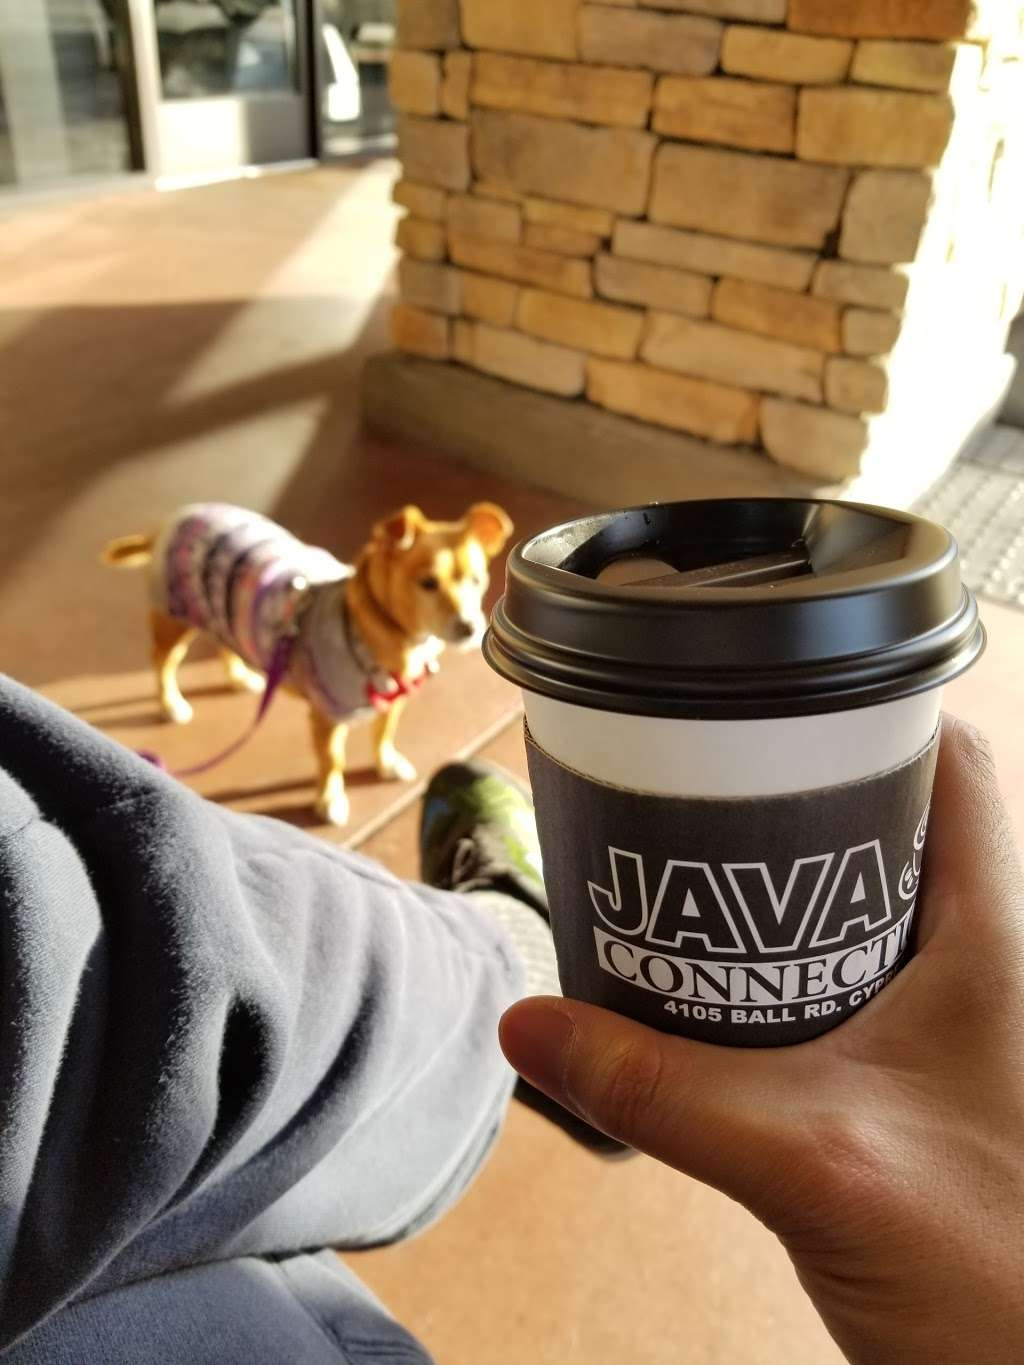 Java Connection - cafe  | Photo 2 of 10 | Address: 4105 Ball Rd, Cypress, CA 90630, USA | Phone: (714) 484-9221